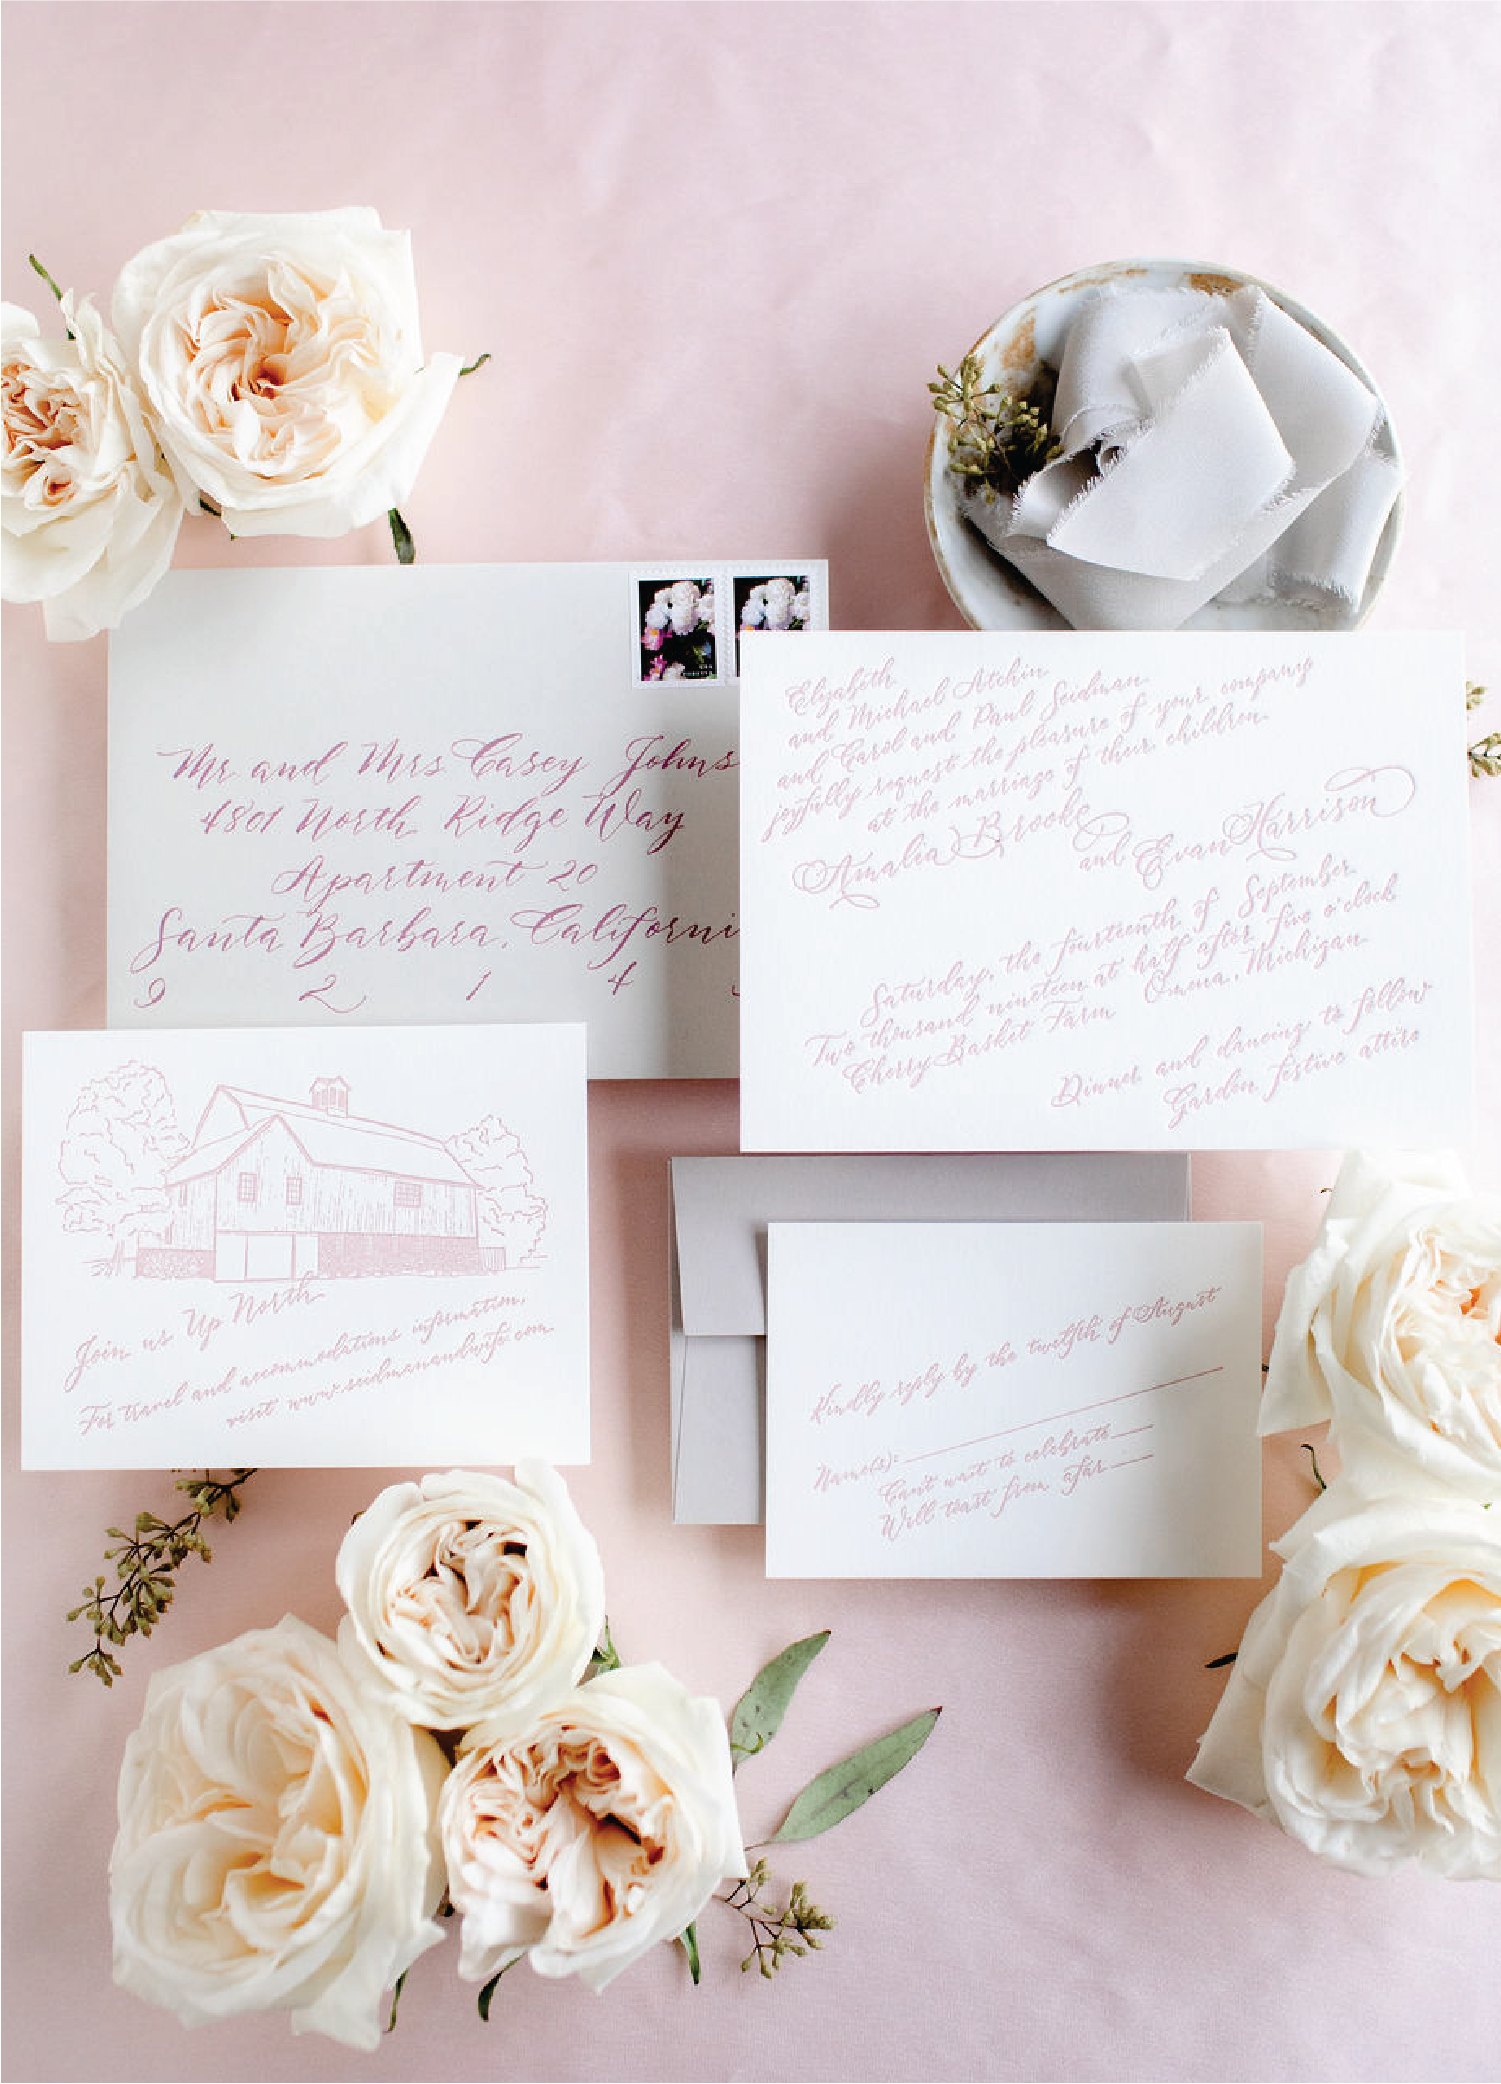 Wedding stationery tips - Dusty rose letterpress wedding invitations with calligraphy by Leah E. Moss Designs for Cherry Basket Farm in northern Michigan - up north wedding